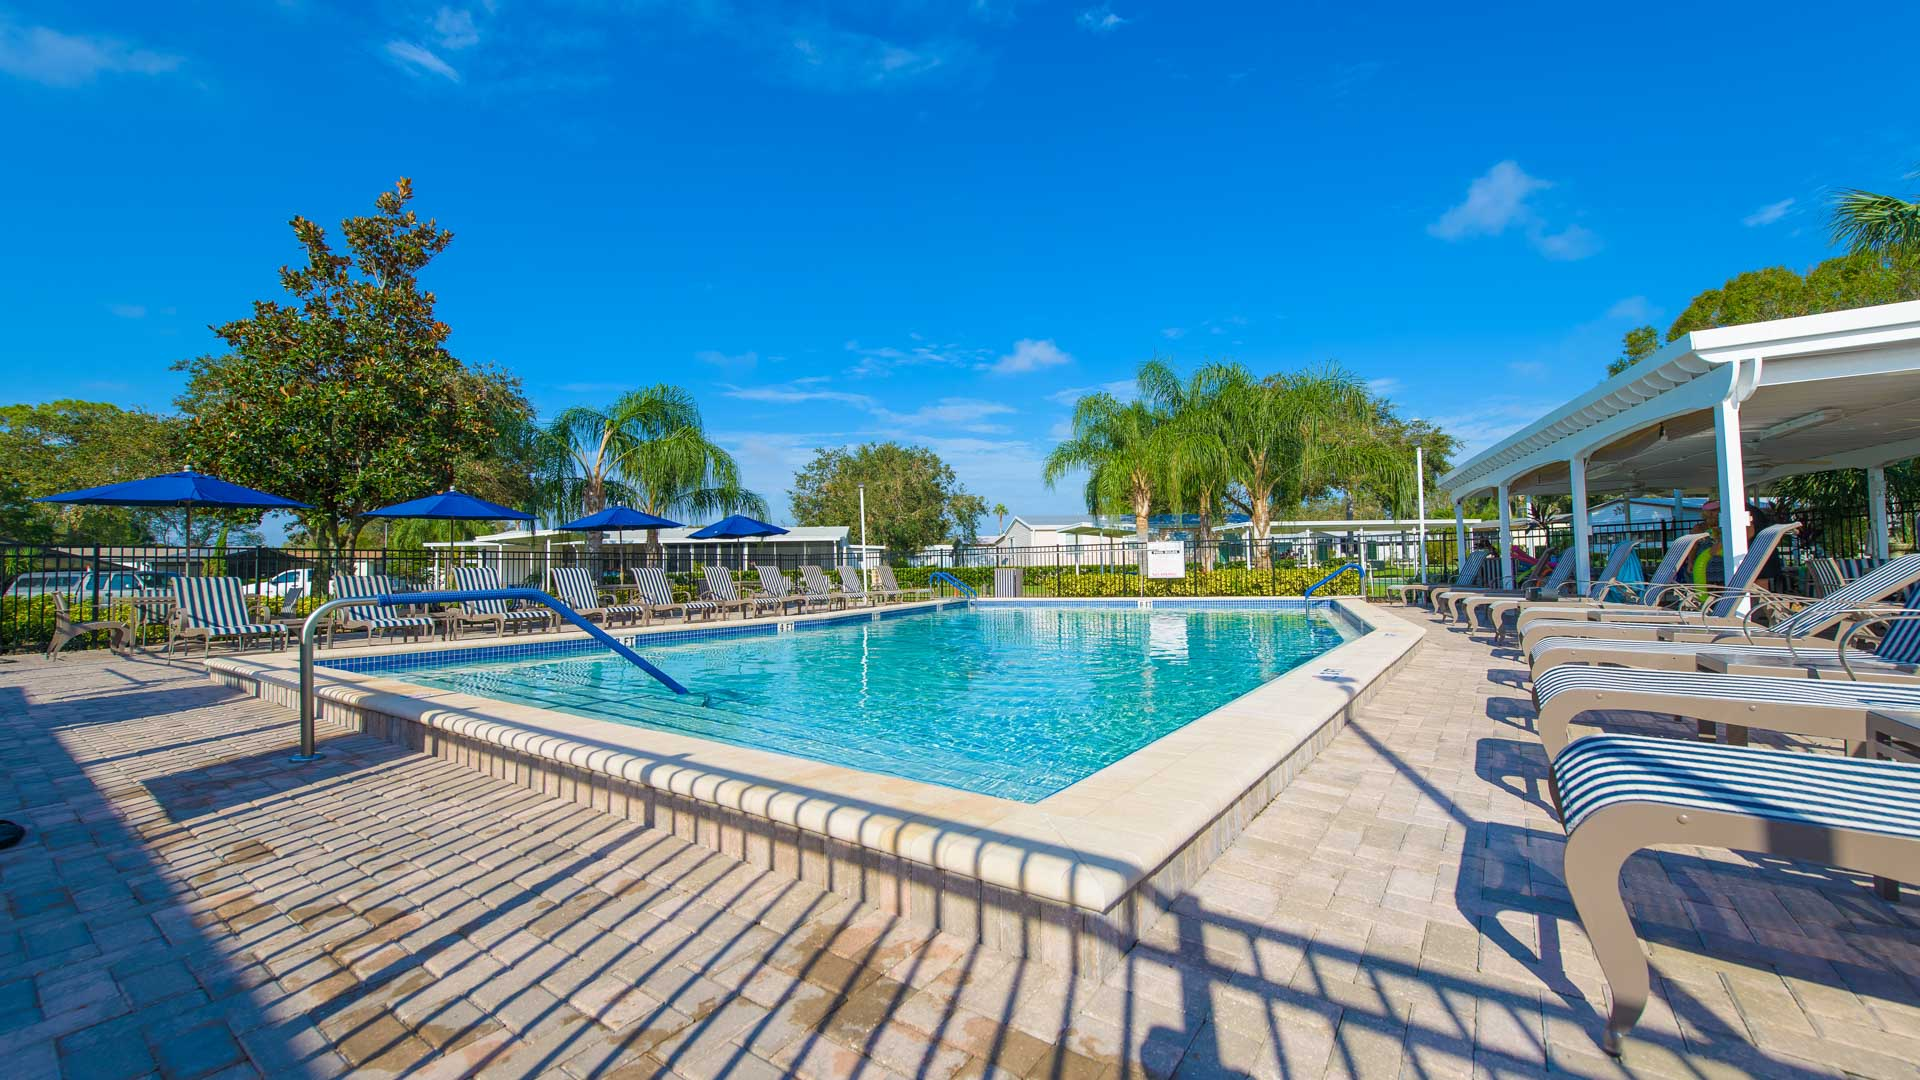 Kings Pointe 55+ Manufactured Homes Community Swimming Pool in Lake Alfred, FL